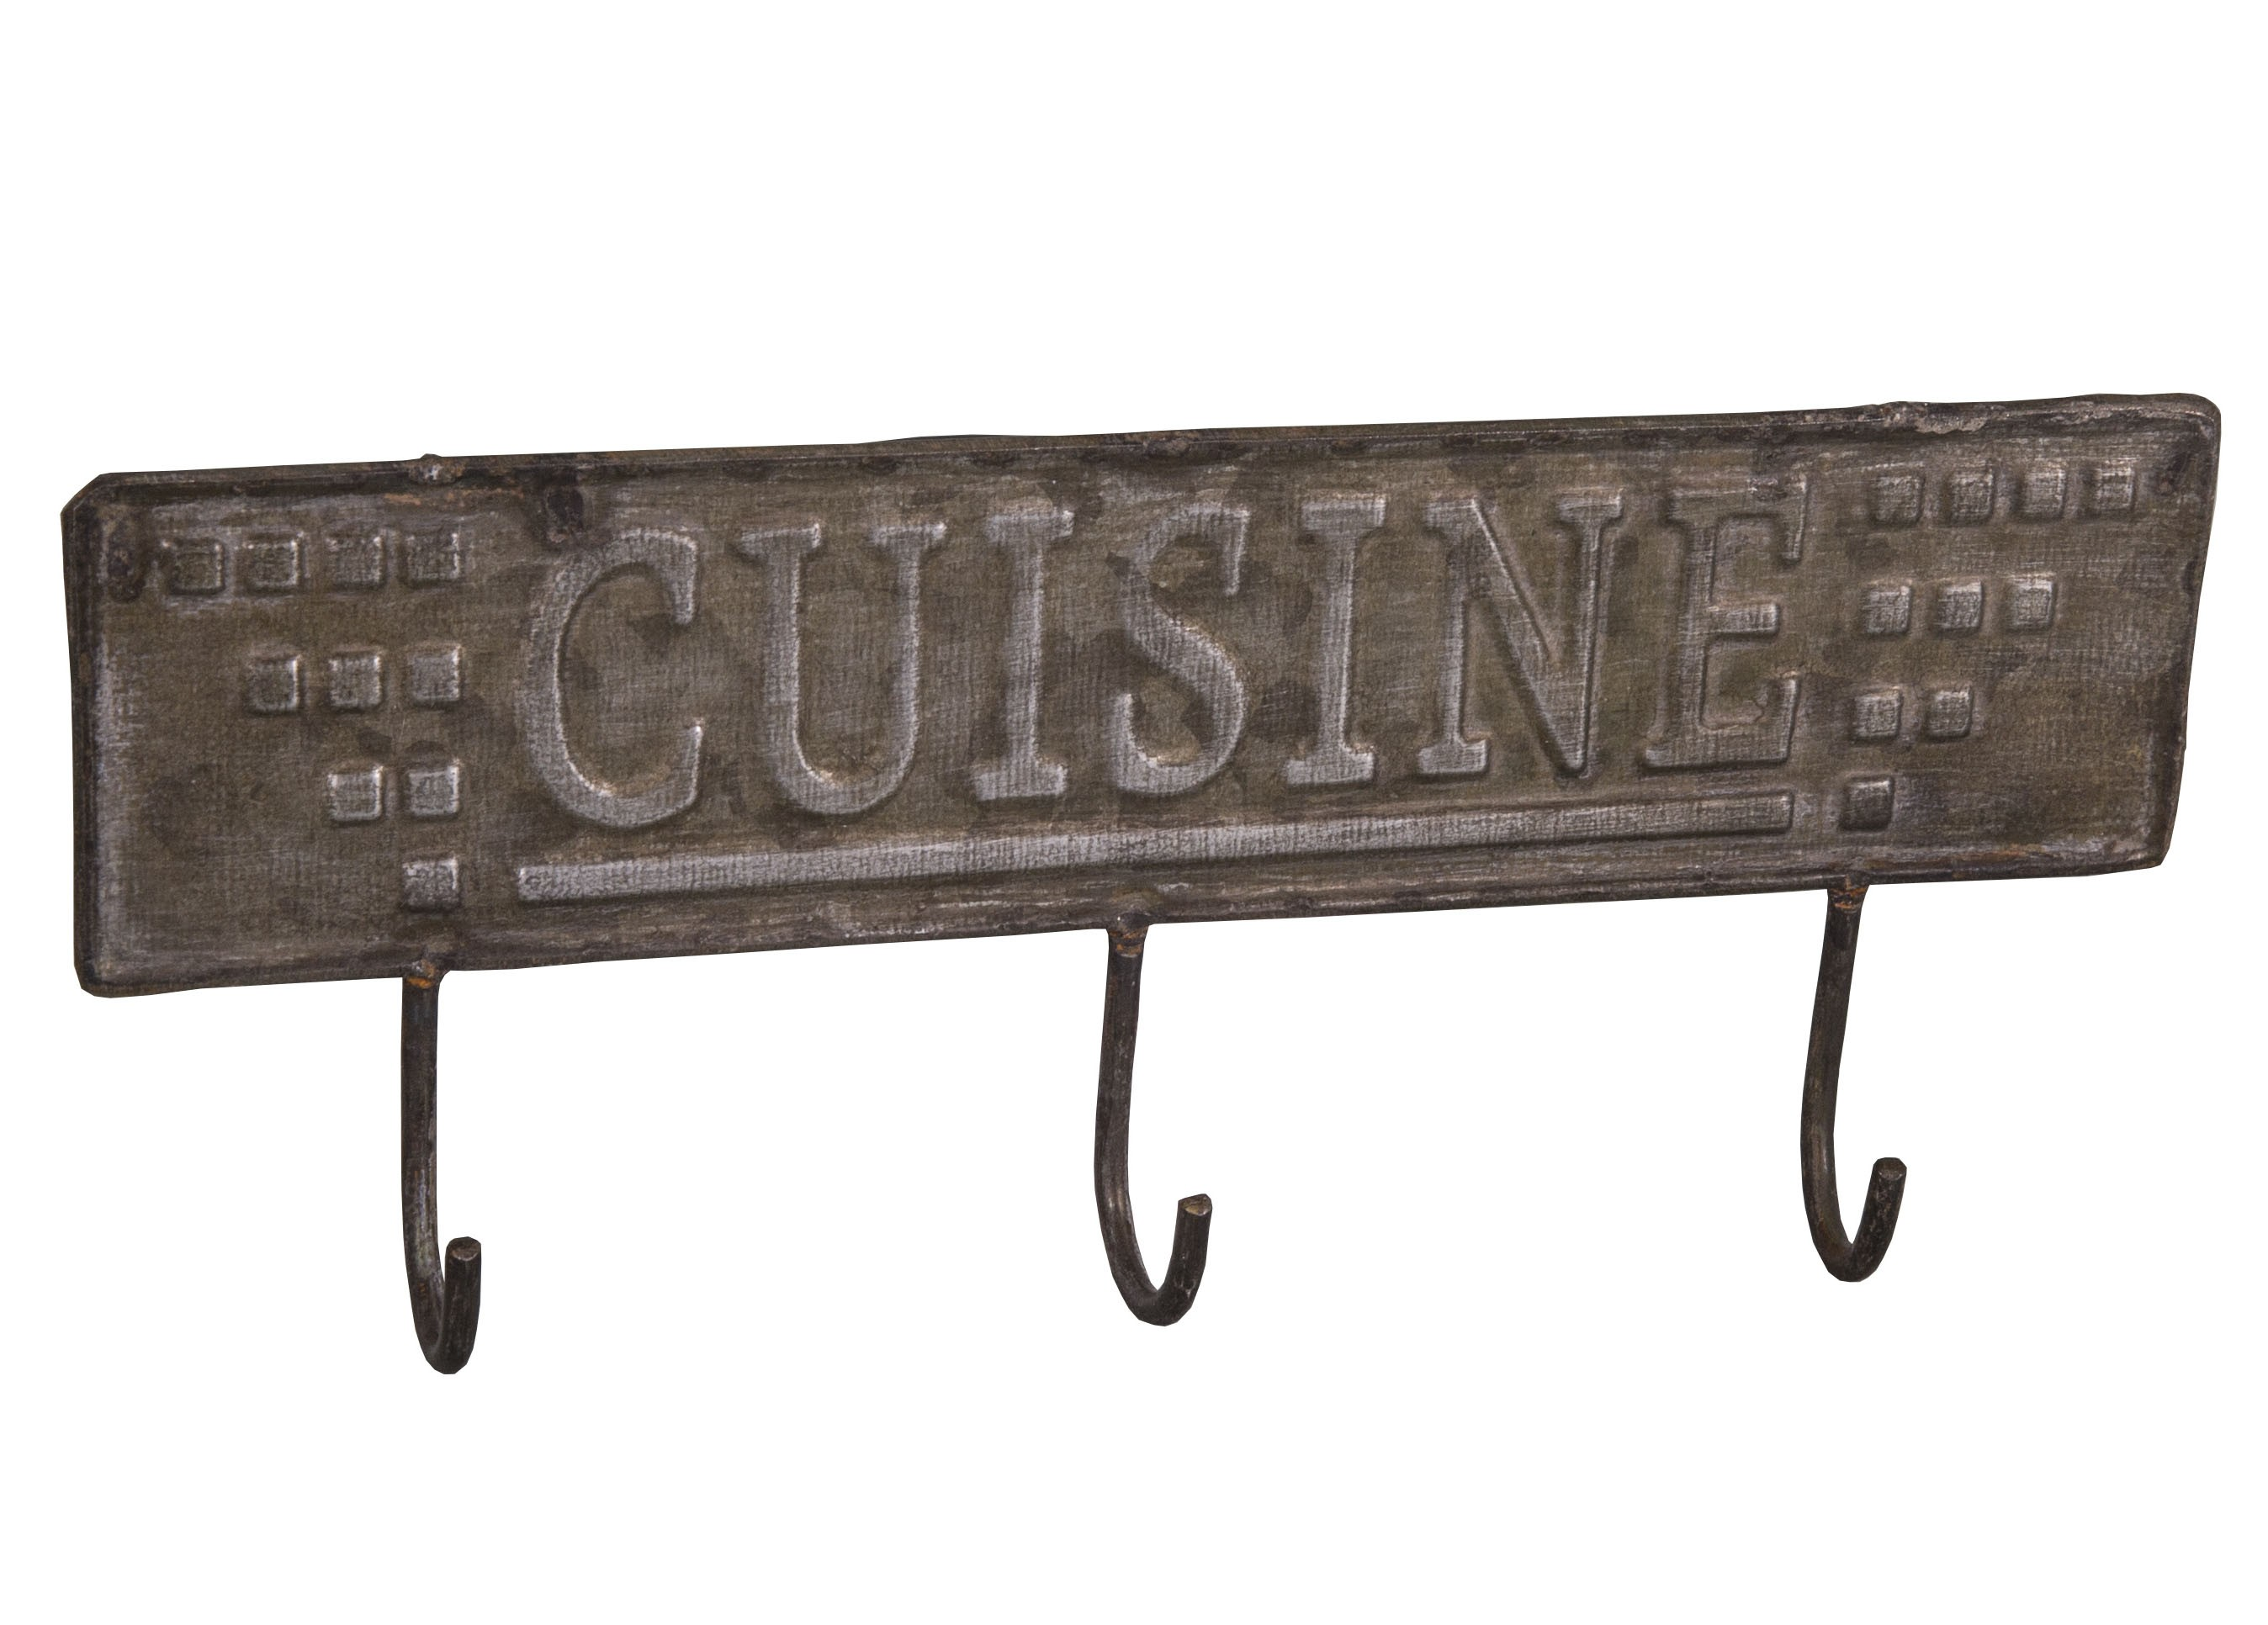 3 Hook Zinc Hook Cuisine By Antic Line Ideal For A Shabby Chic